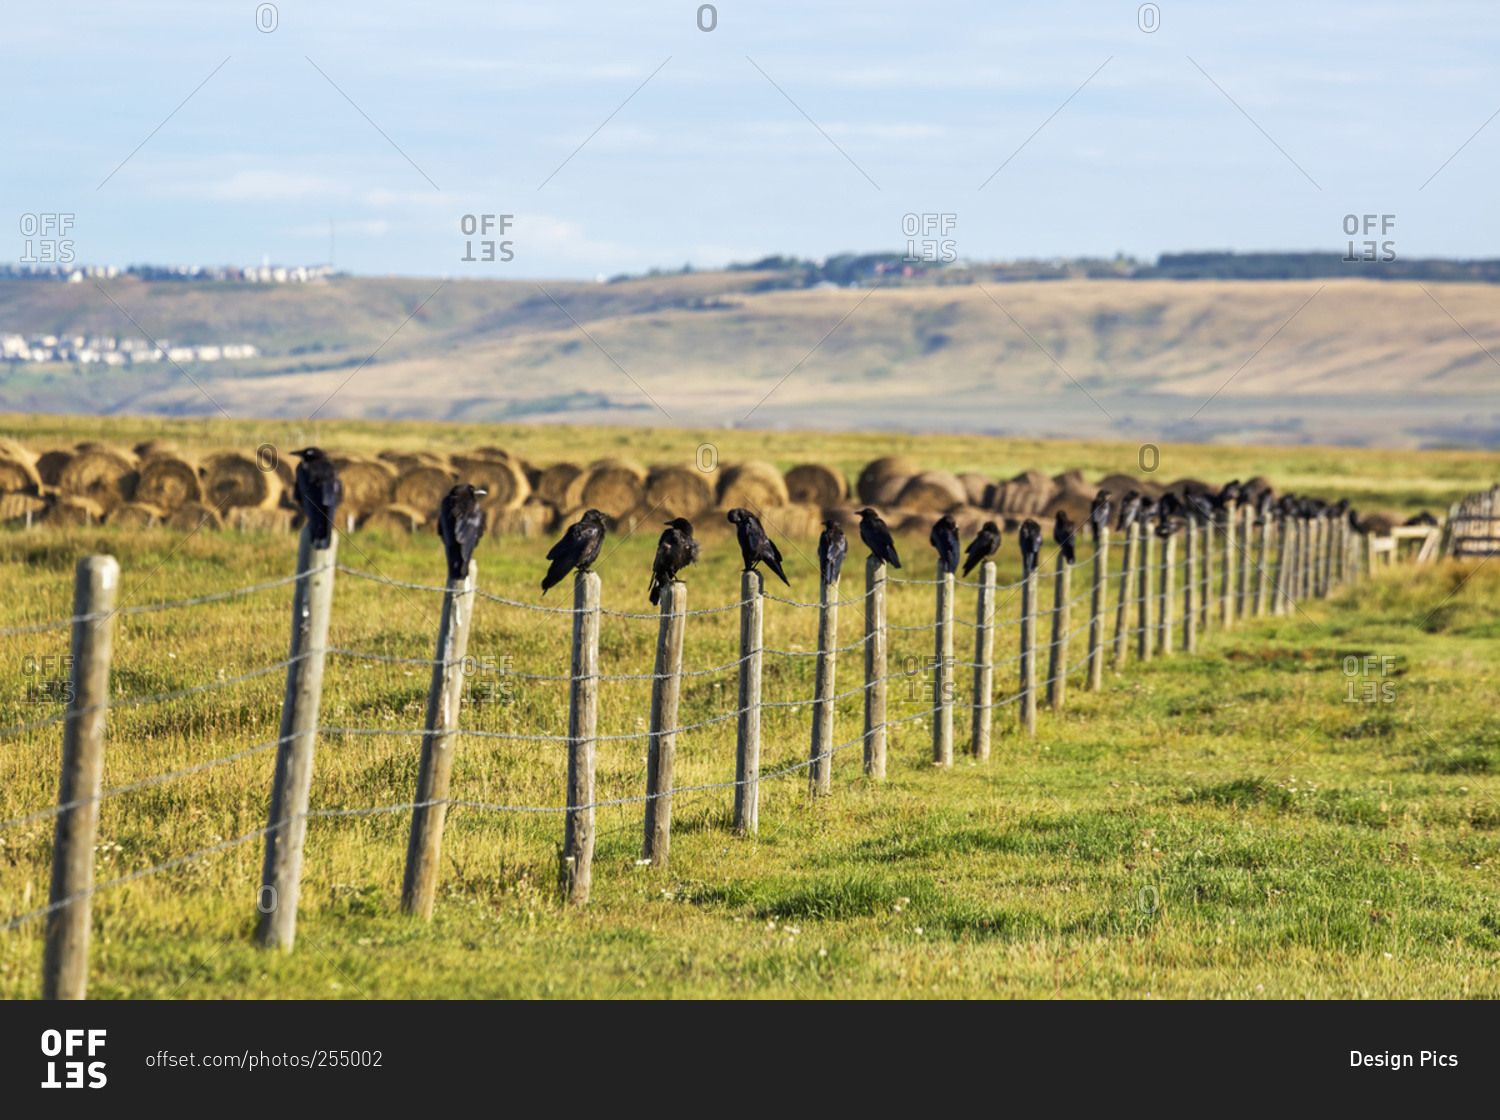 crows in a row on top of wooden fence posts in alberta canada